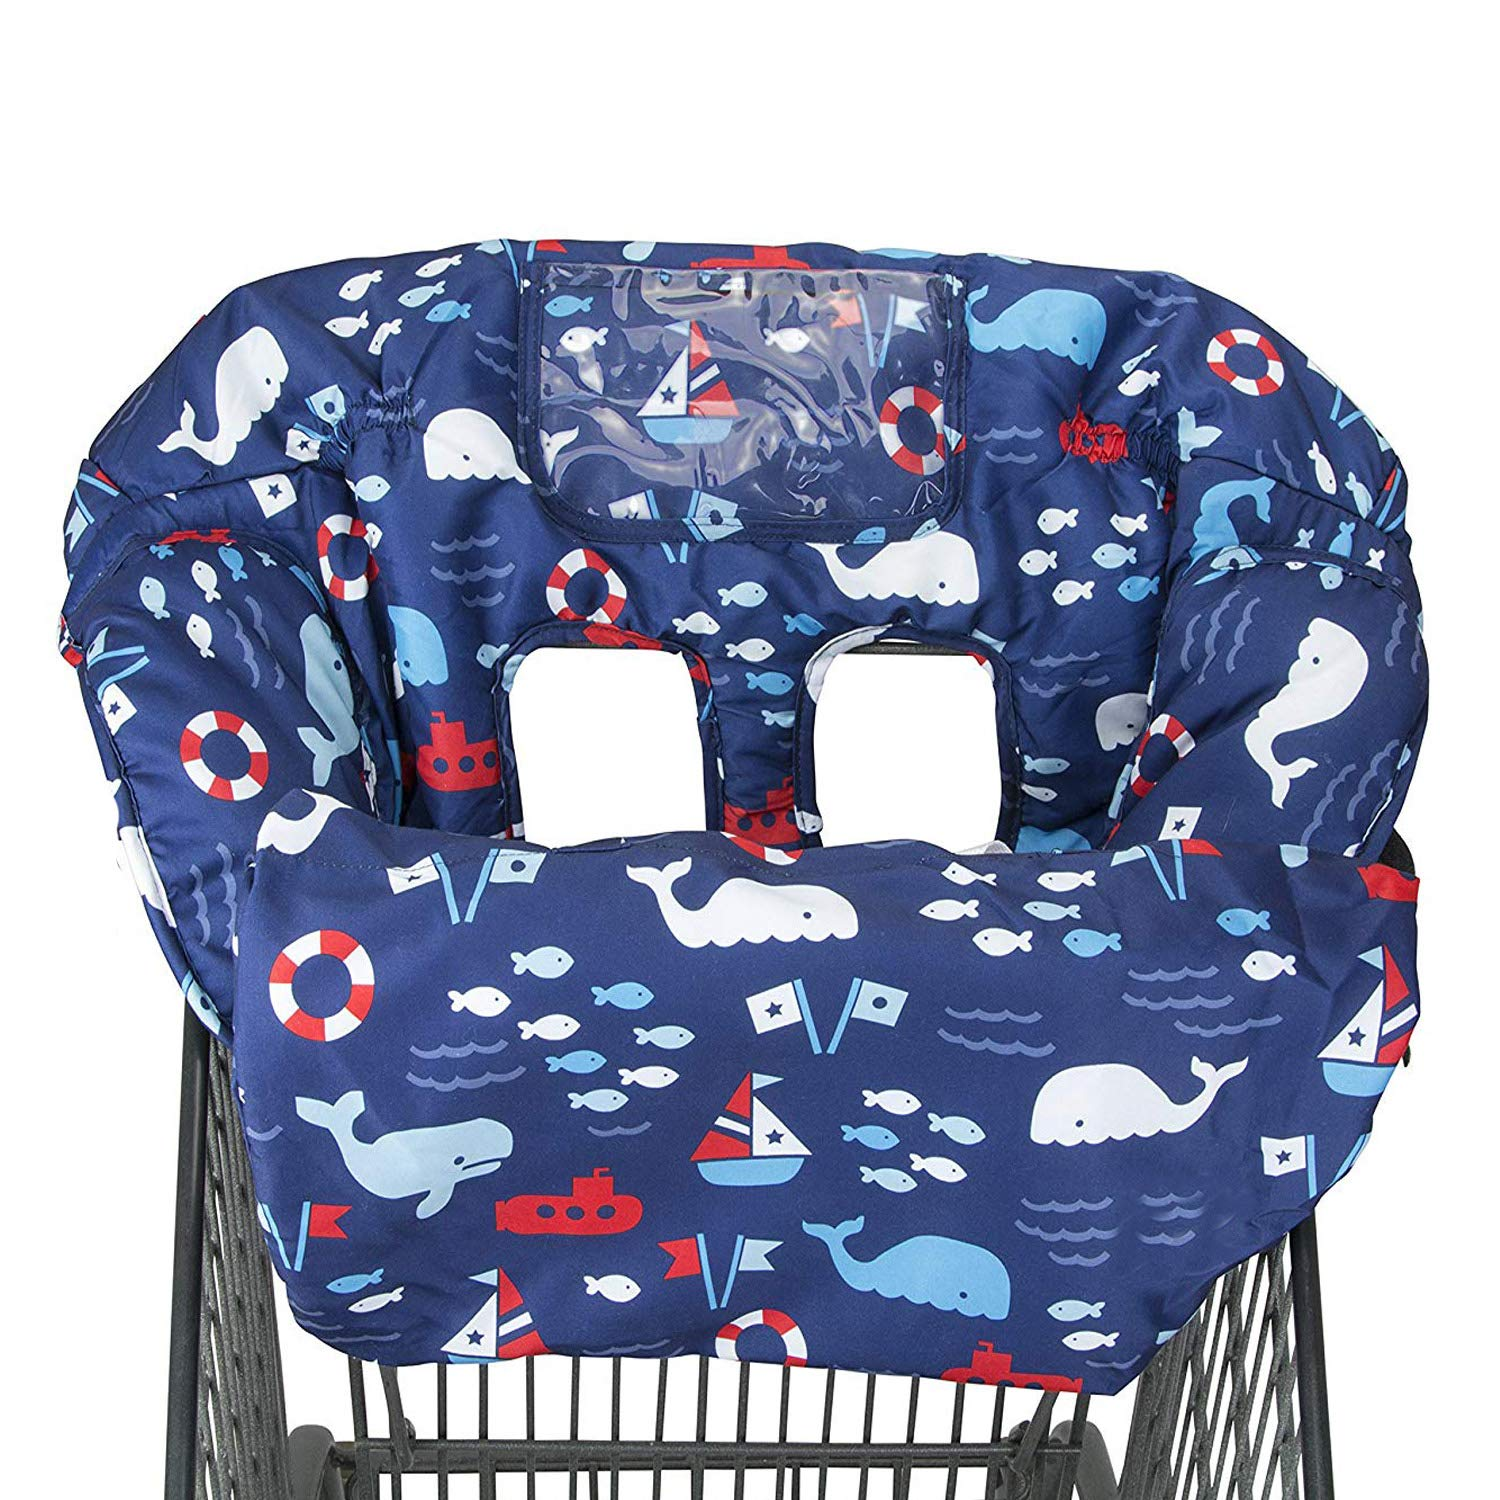 Kids Shopping Cart Cover Seat Baby Soft Comfortable Mat Portable Safe Owl Cover